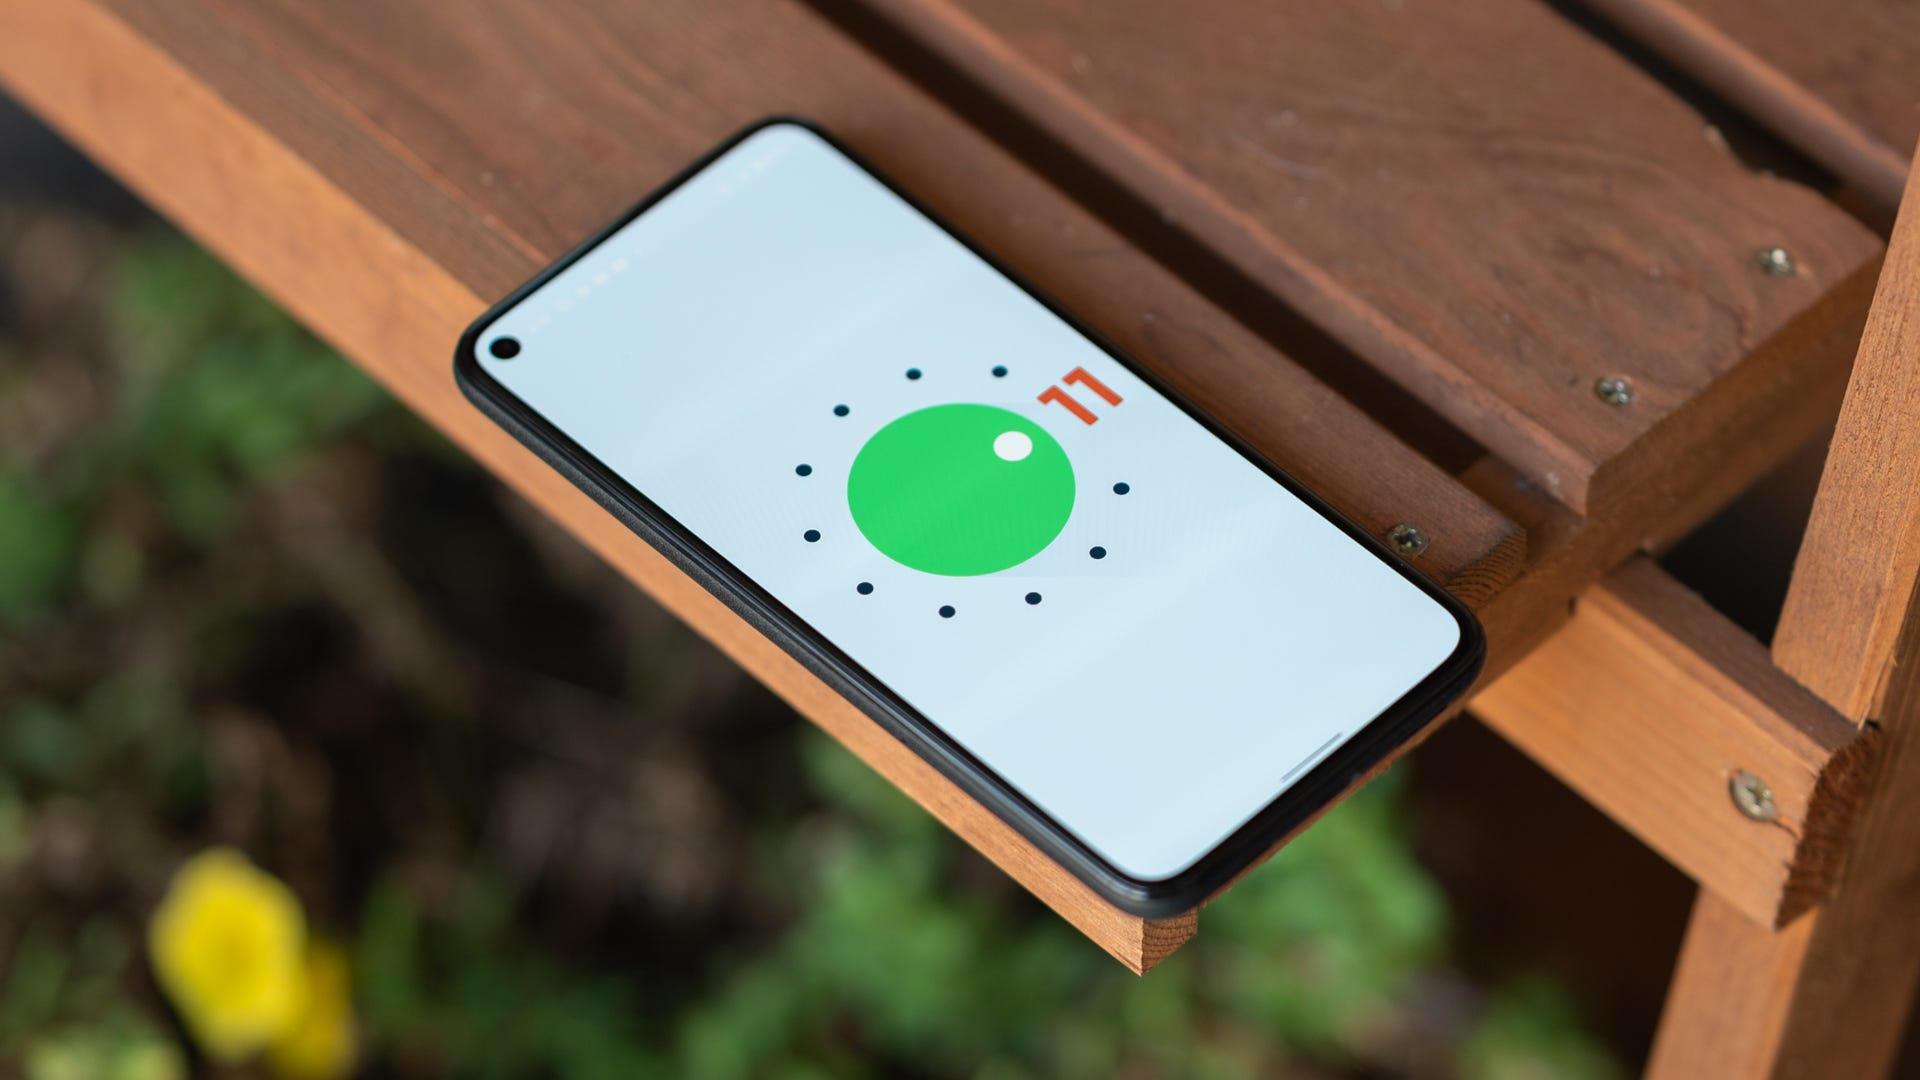 The Pixel 5 on a wooden table with the Android 11 easter egg screen.